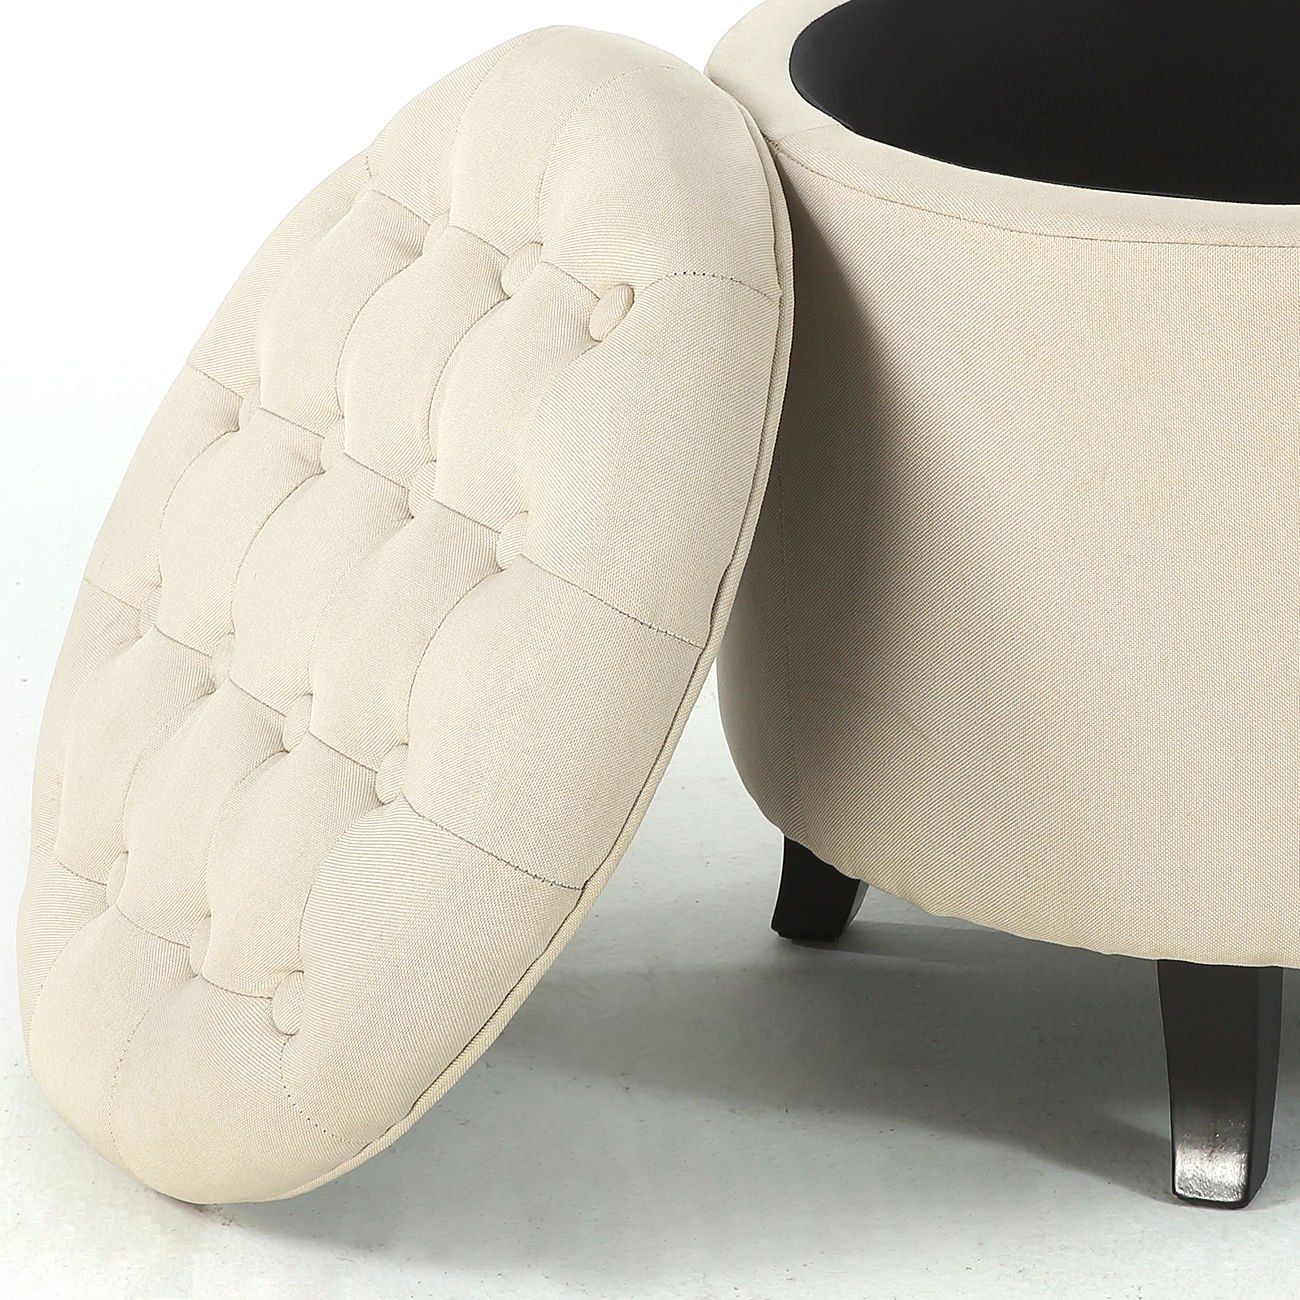 Storage Beige Ottoman Coffee Table Elegant w/ Button Tufted Accents Upholstered